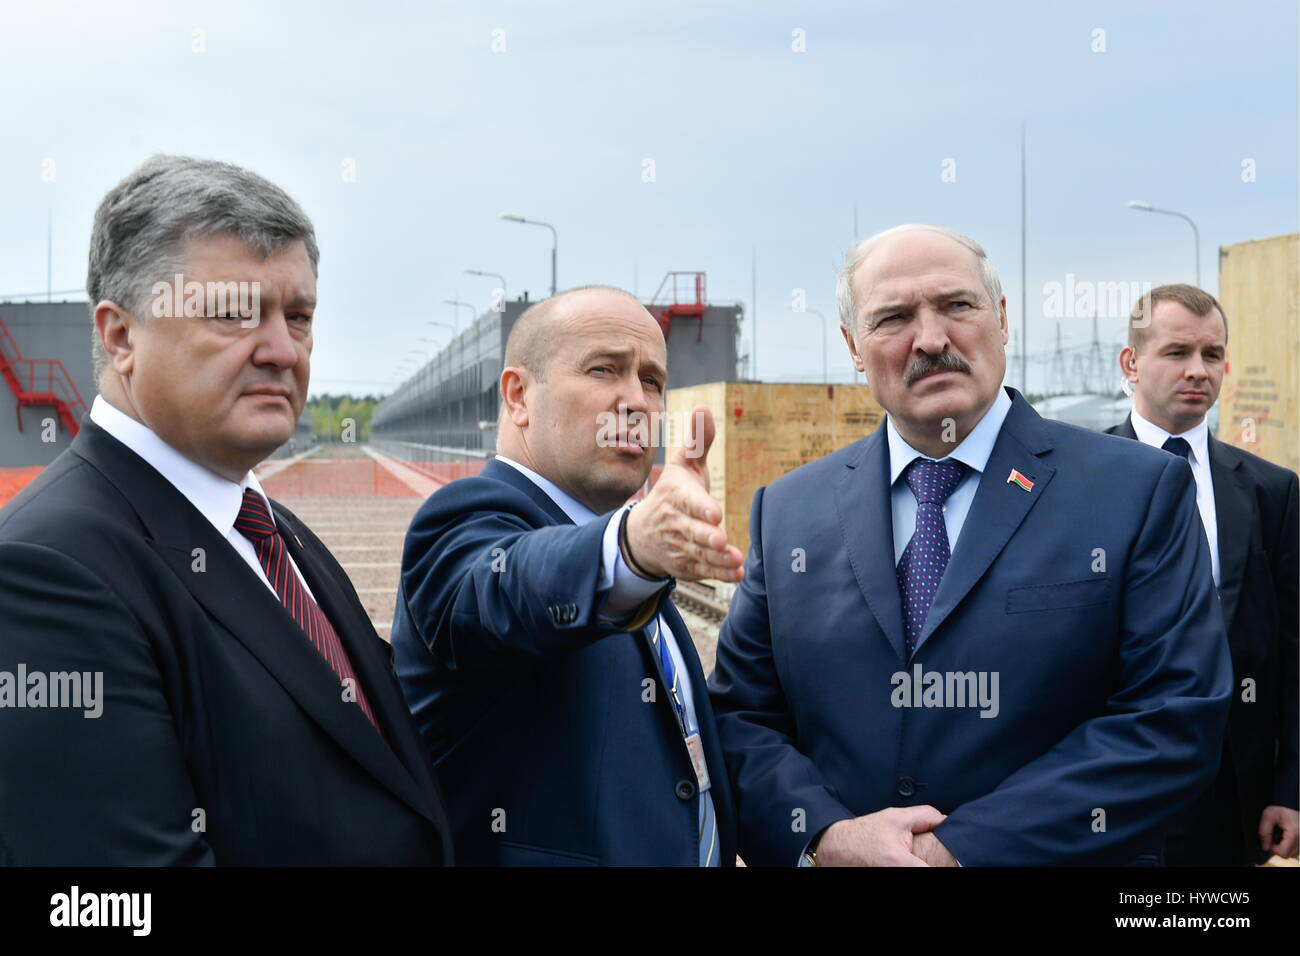 Kiev region ukraine 26th apr 2017 the president of ukraine the president of ukraine petro poroshenko the general director of the chernobyl nuclear power plant sse chernobyl npp igor gramotkin and the president freerunsca Images